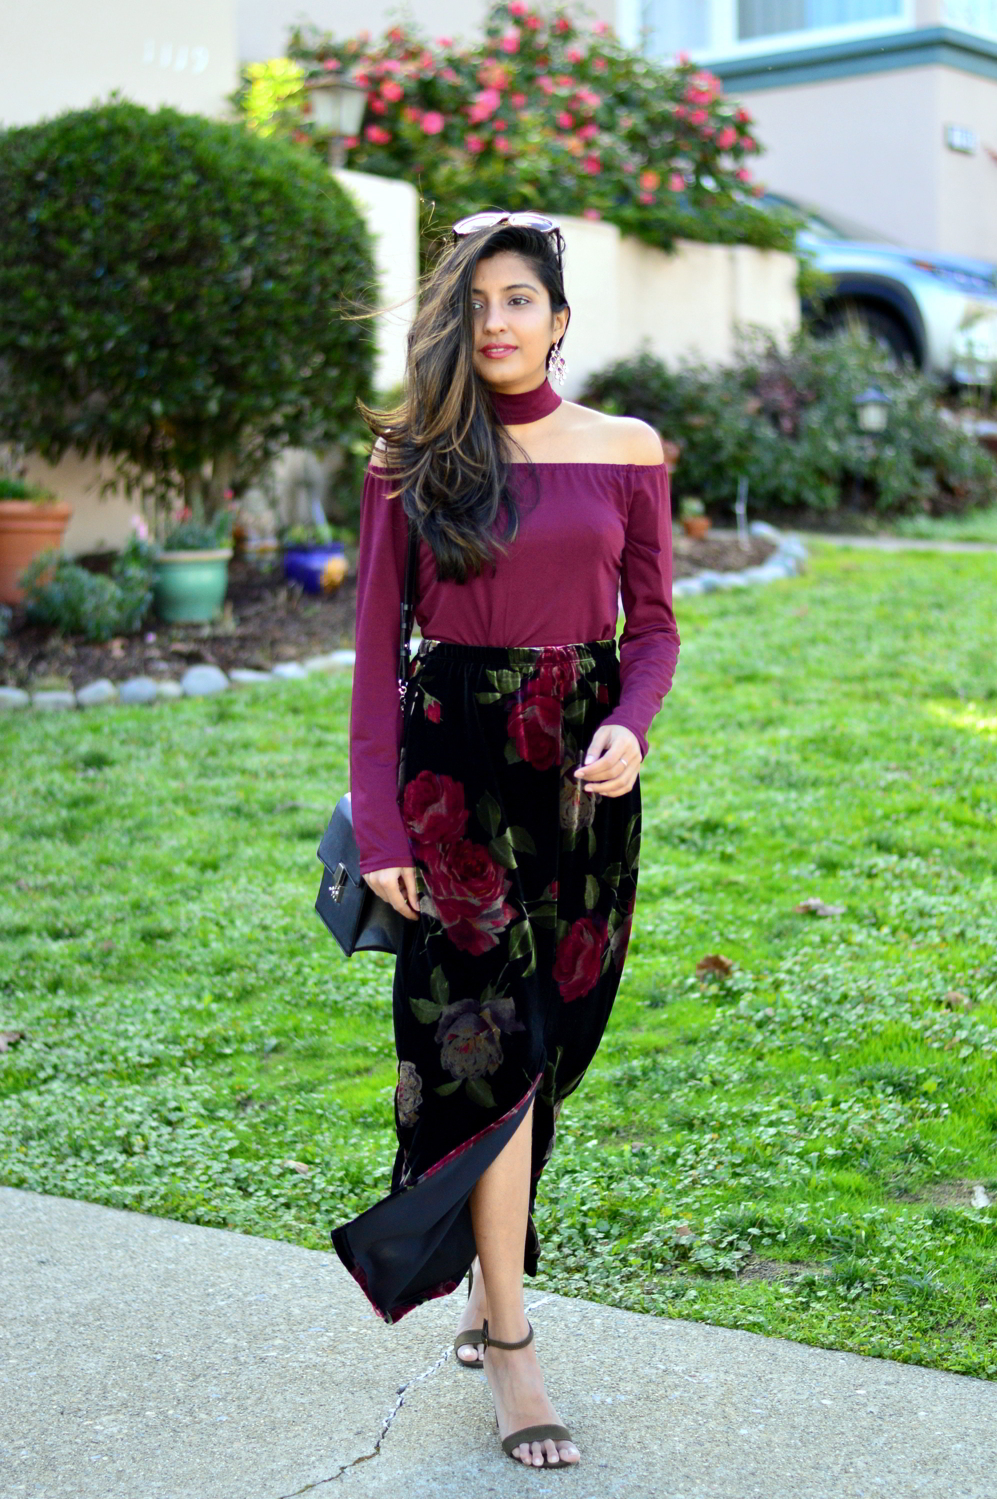 velvet-floral-skirt-choker-burgundy-top-party-outfit-NYE-blogger 5